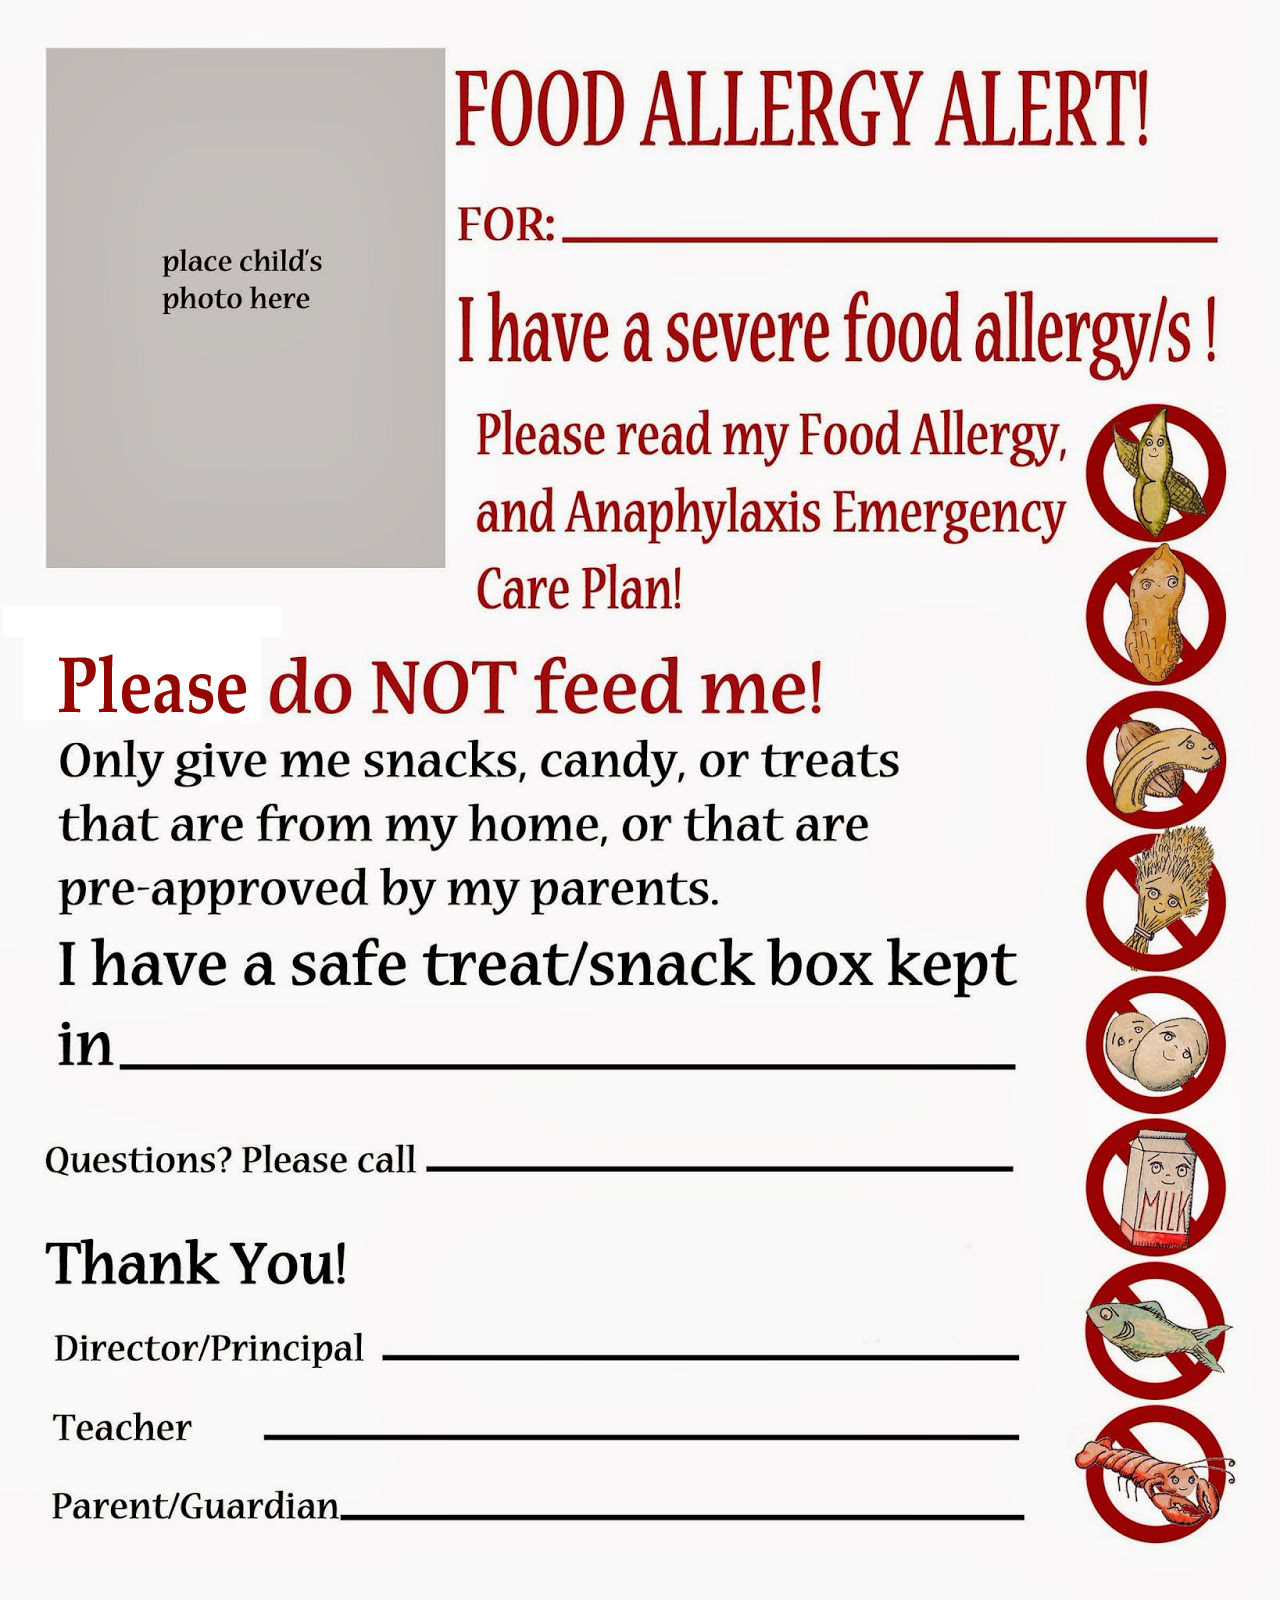 Thriving With Allergies Food Allergy Alert Daycare School